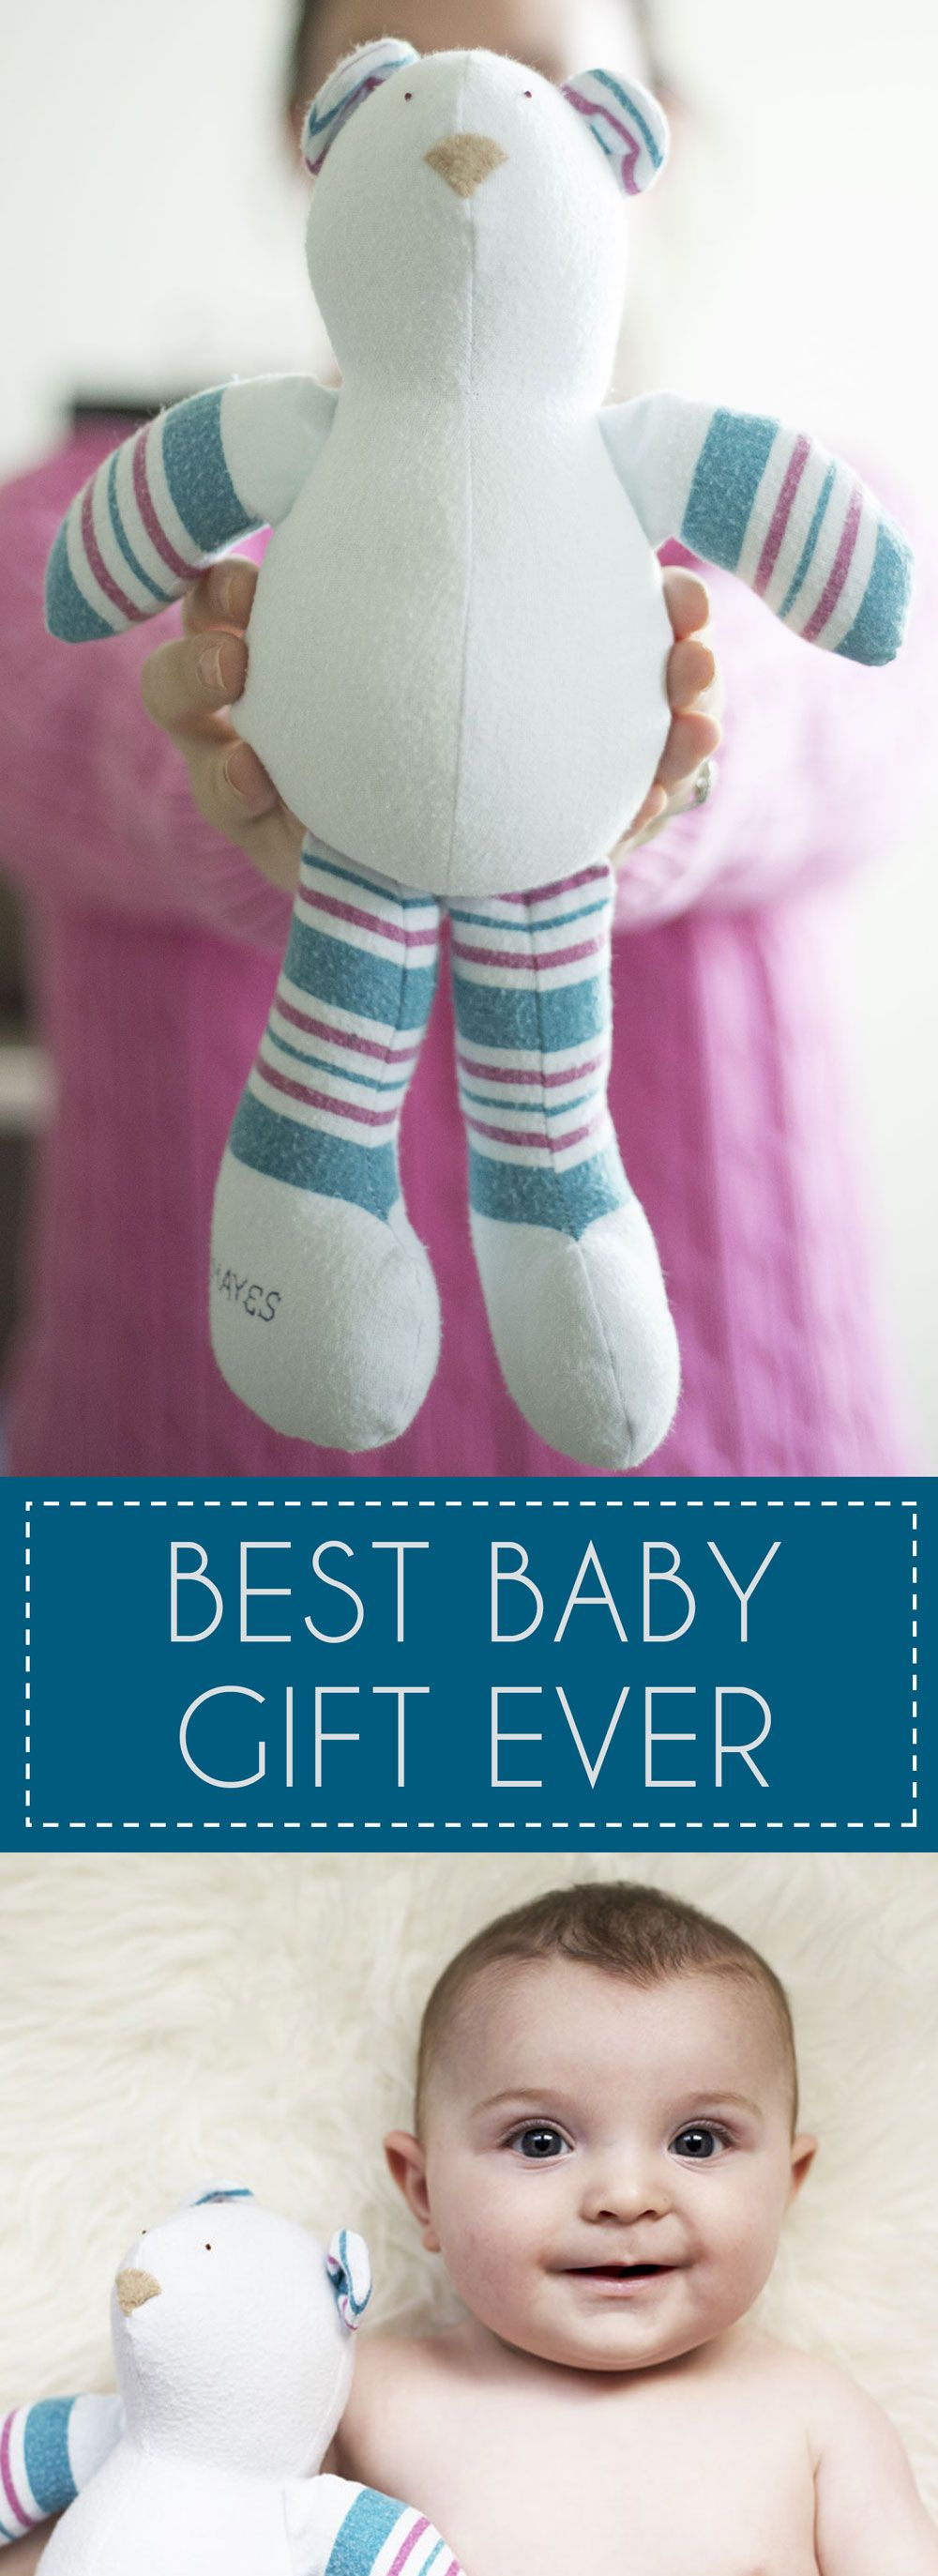 Best Baby Gift Ever Made From Your Babies Hospital